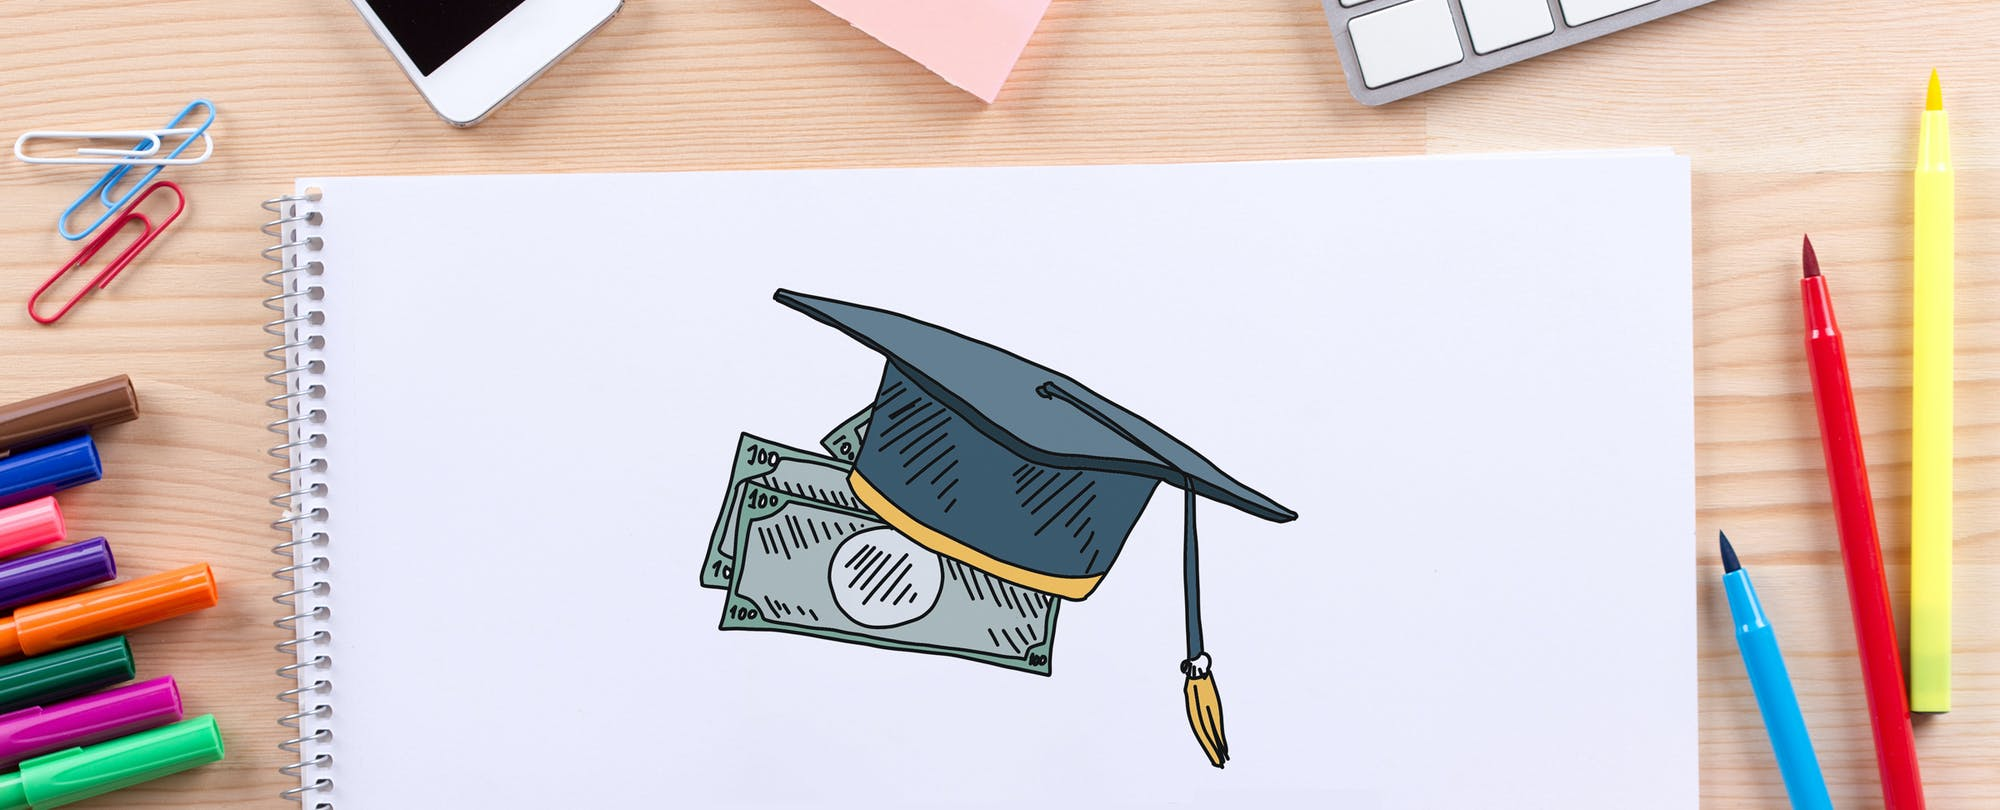 RaiseMe Gets $15M to Help Students Cut College Costs If They Do Well in School